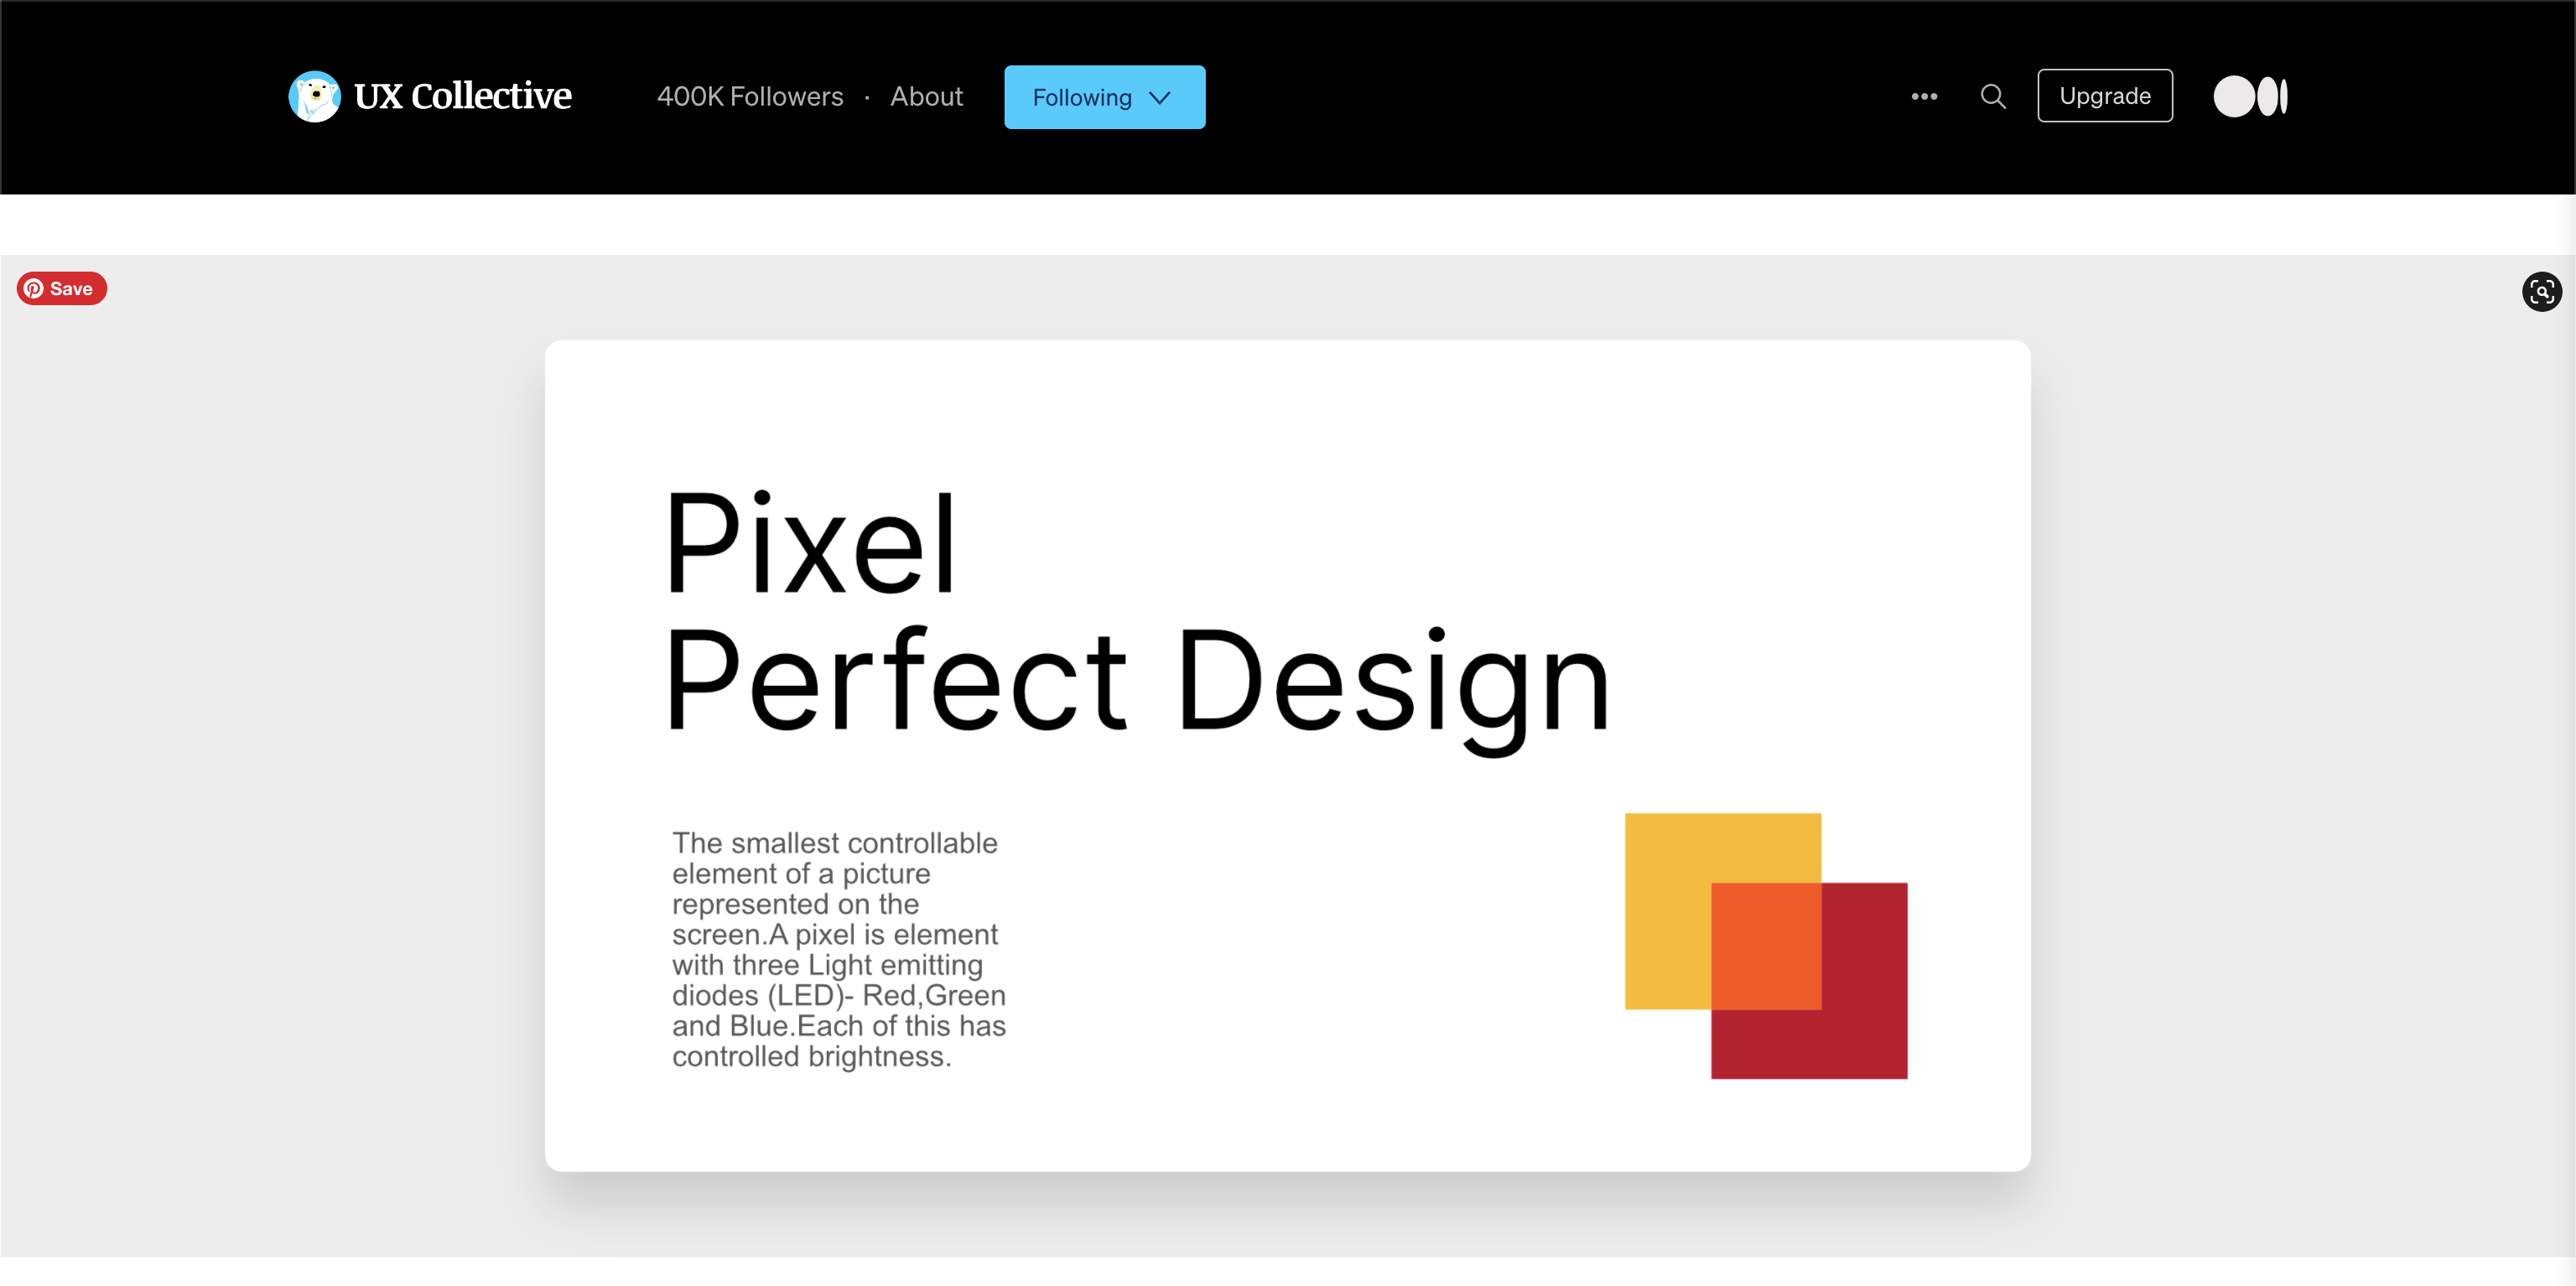 Everything about Pixel Perfect Design